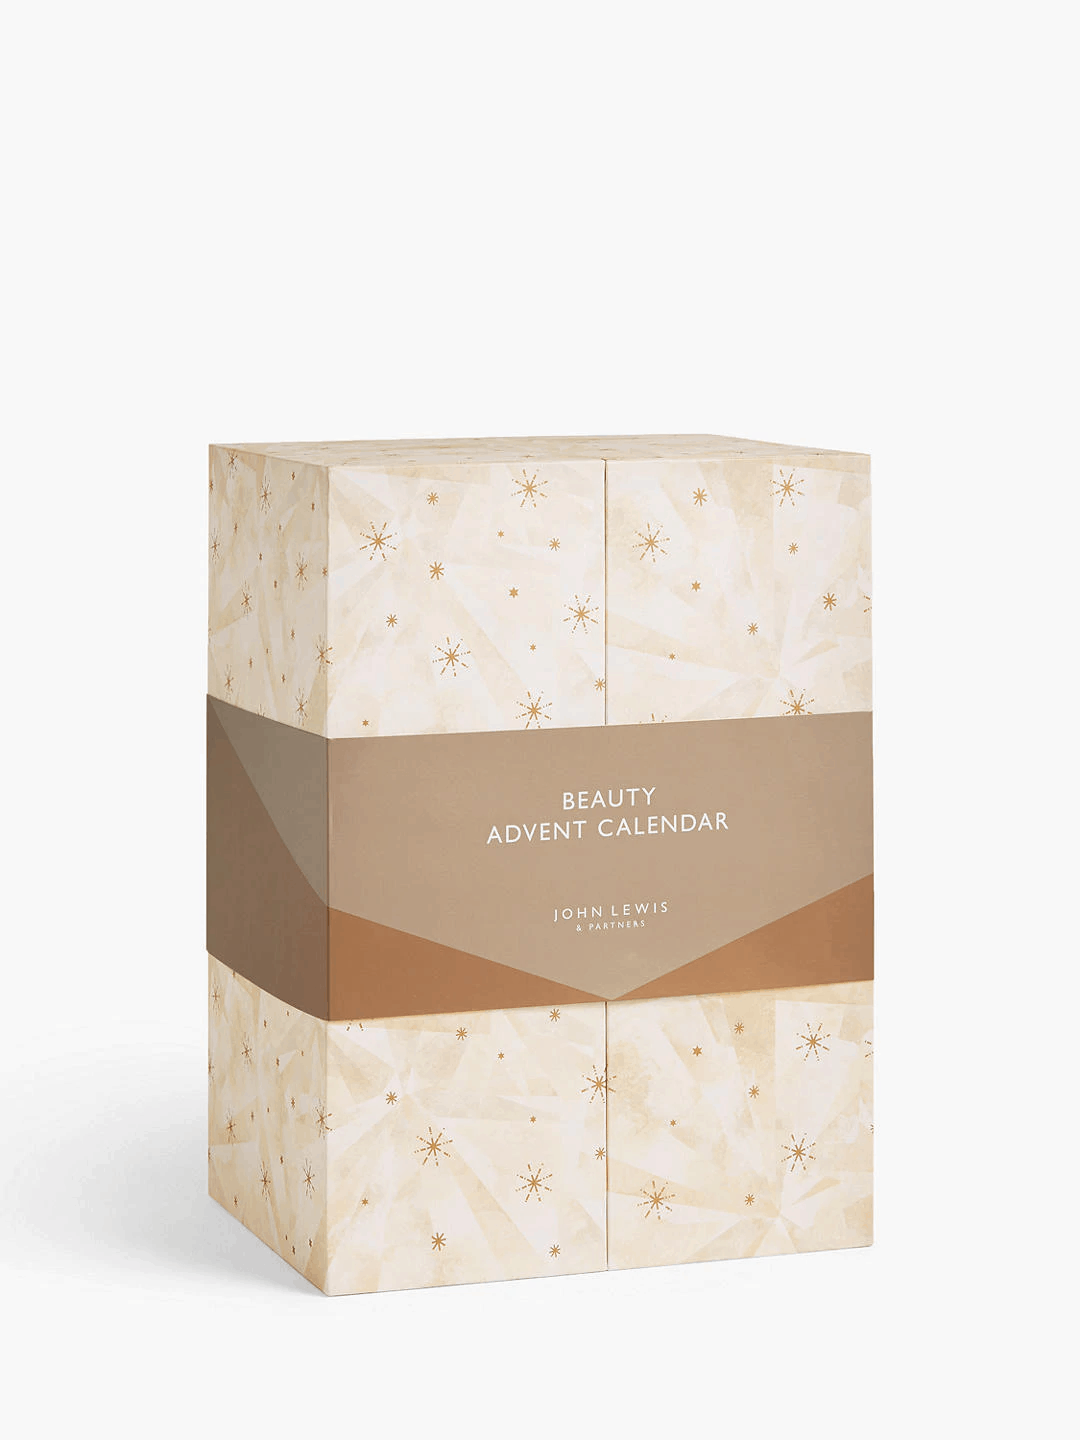 John Lewis Beauty Advent Calendar 2019 Available Now + Full Spoilers! {UK}